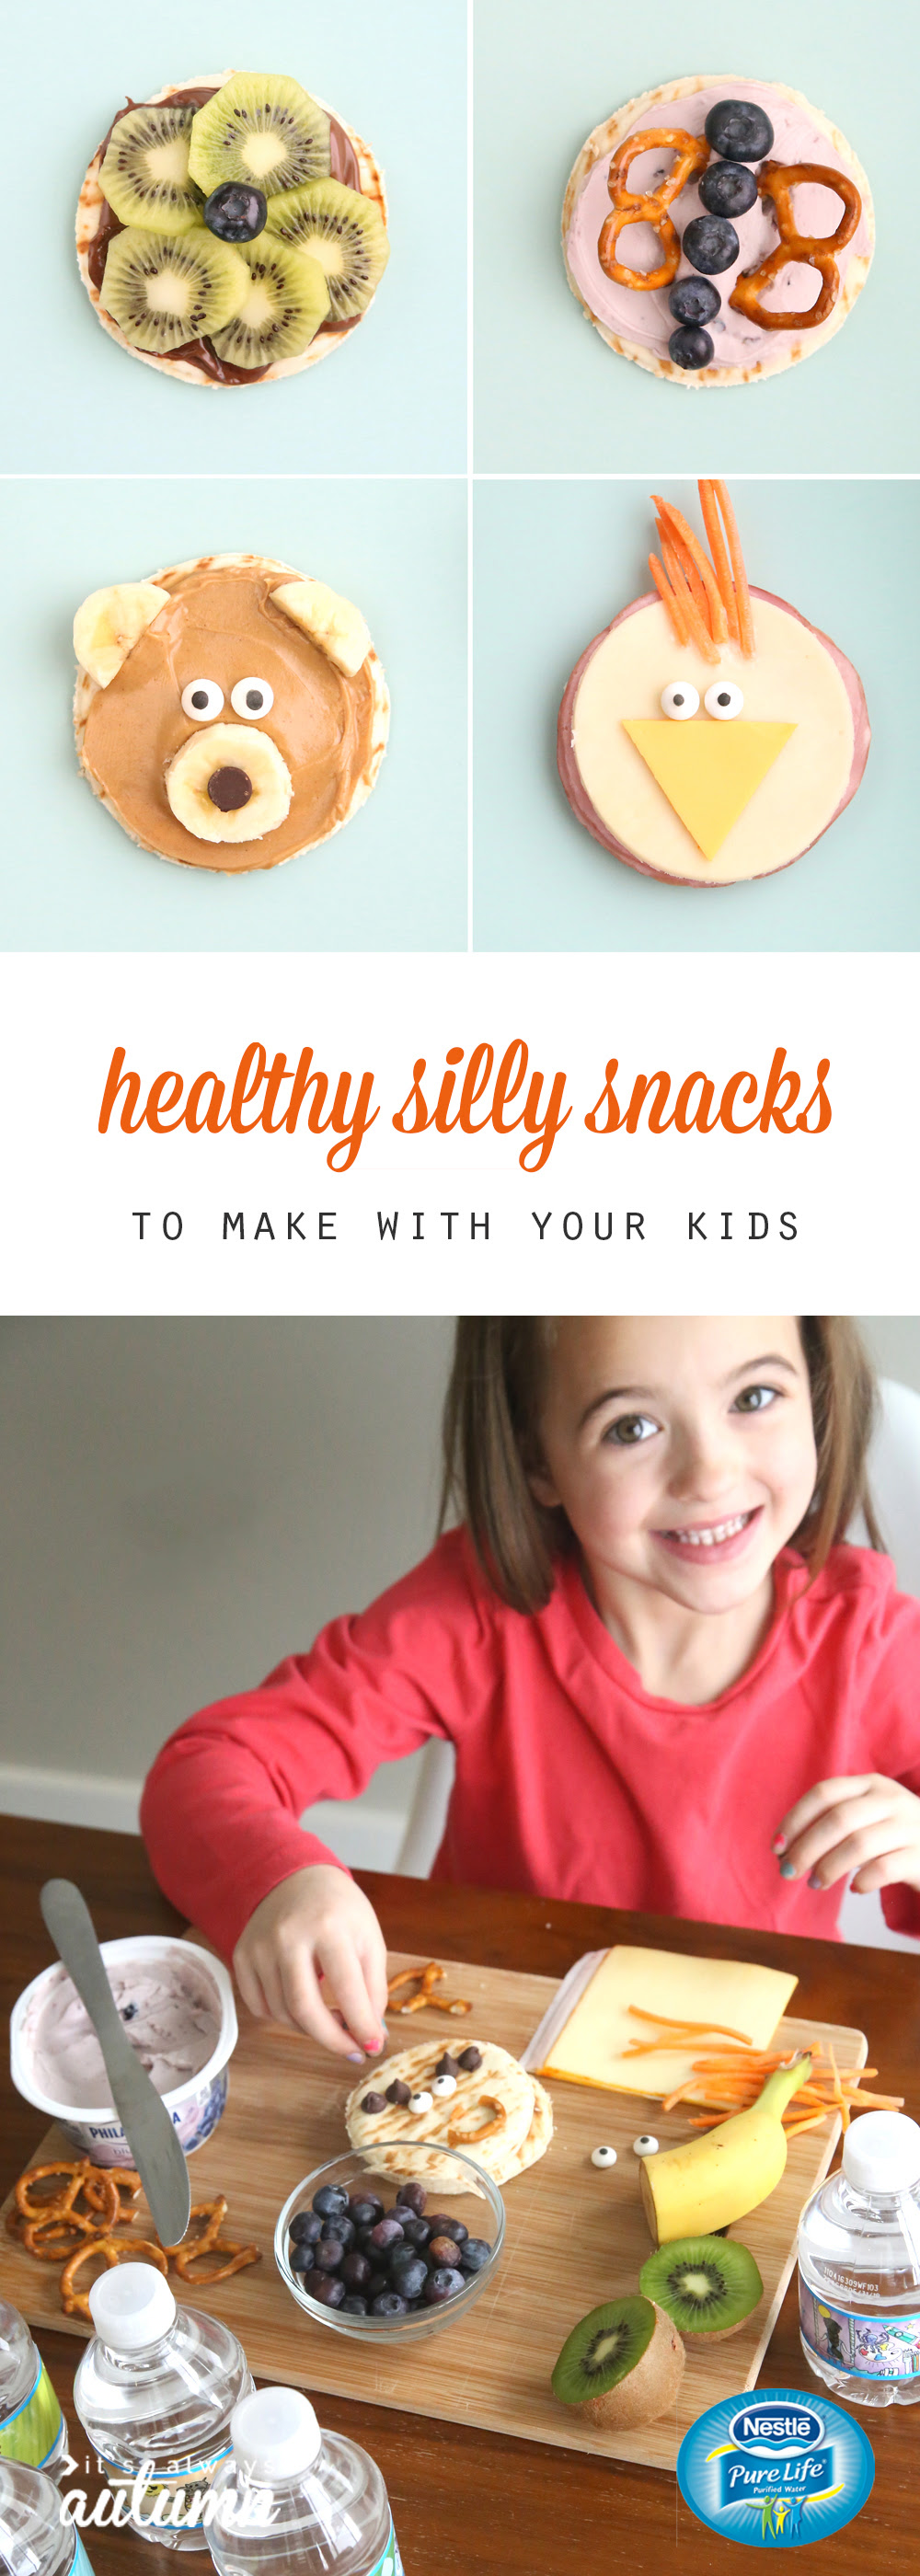 silly snacks to make with your kids easy + healthy - It ...